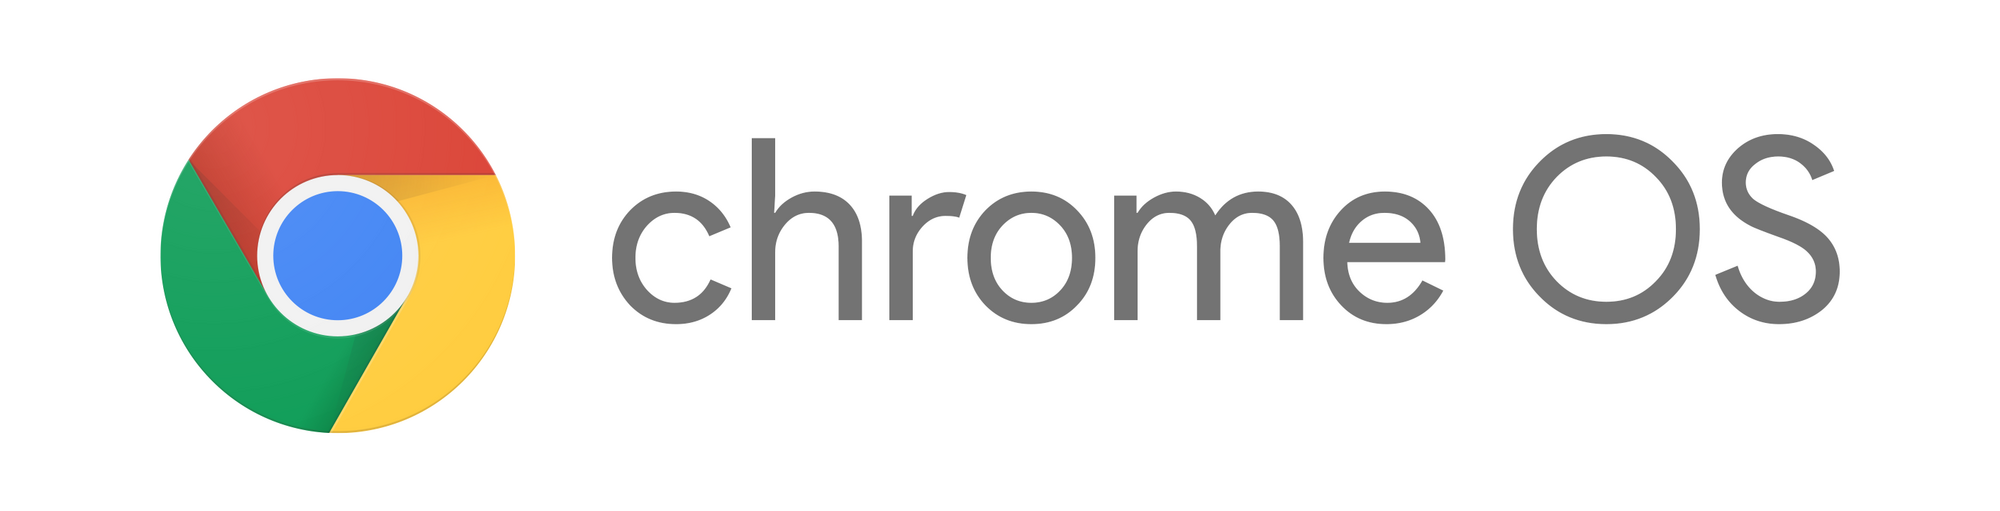 Chrome OS | ChromeOS Wiki | FANDOM powered by Wikia